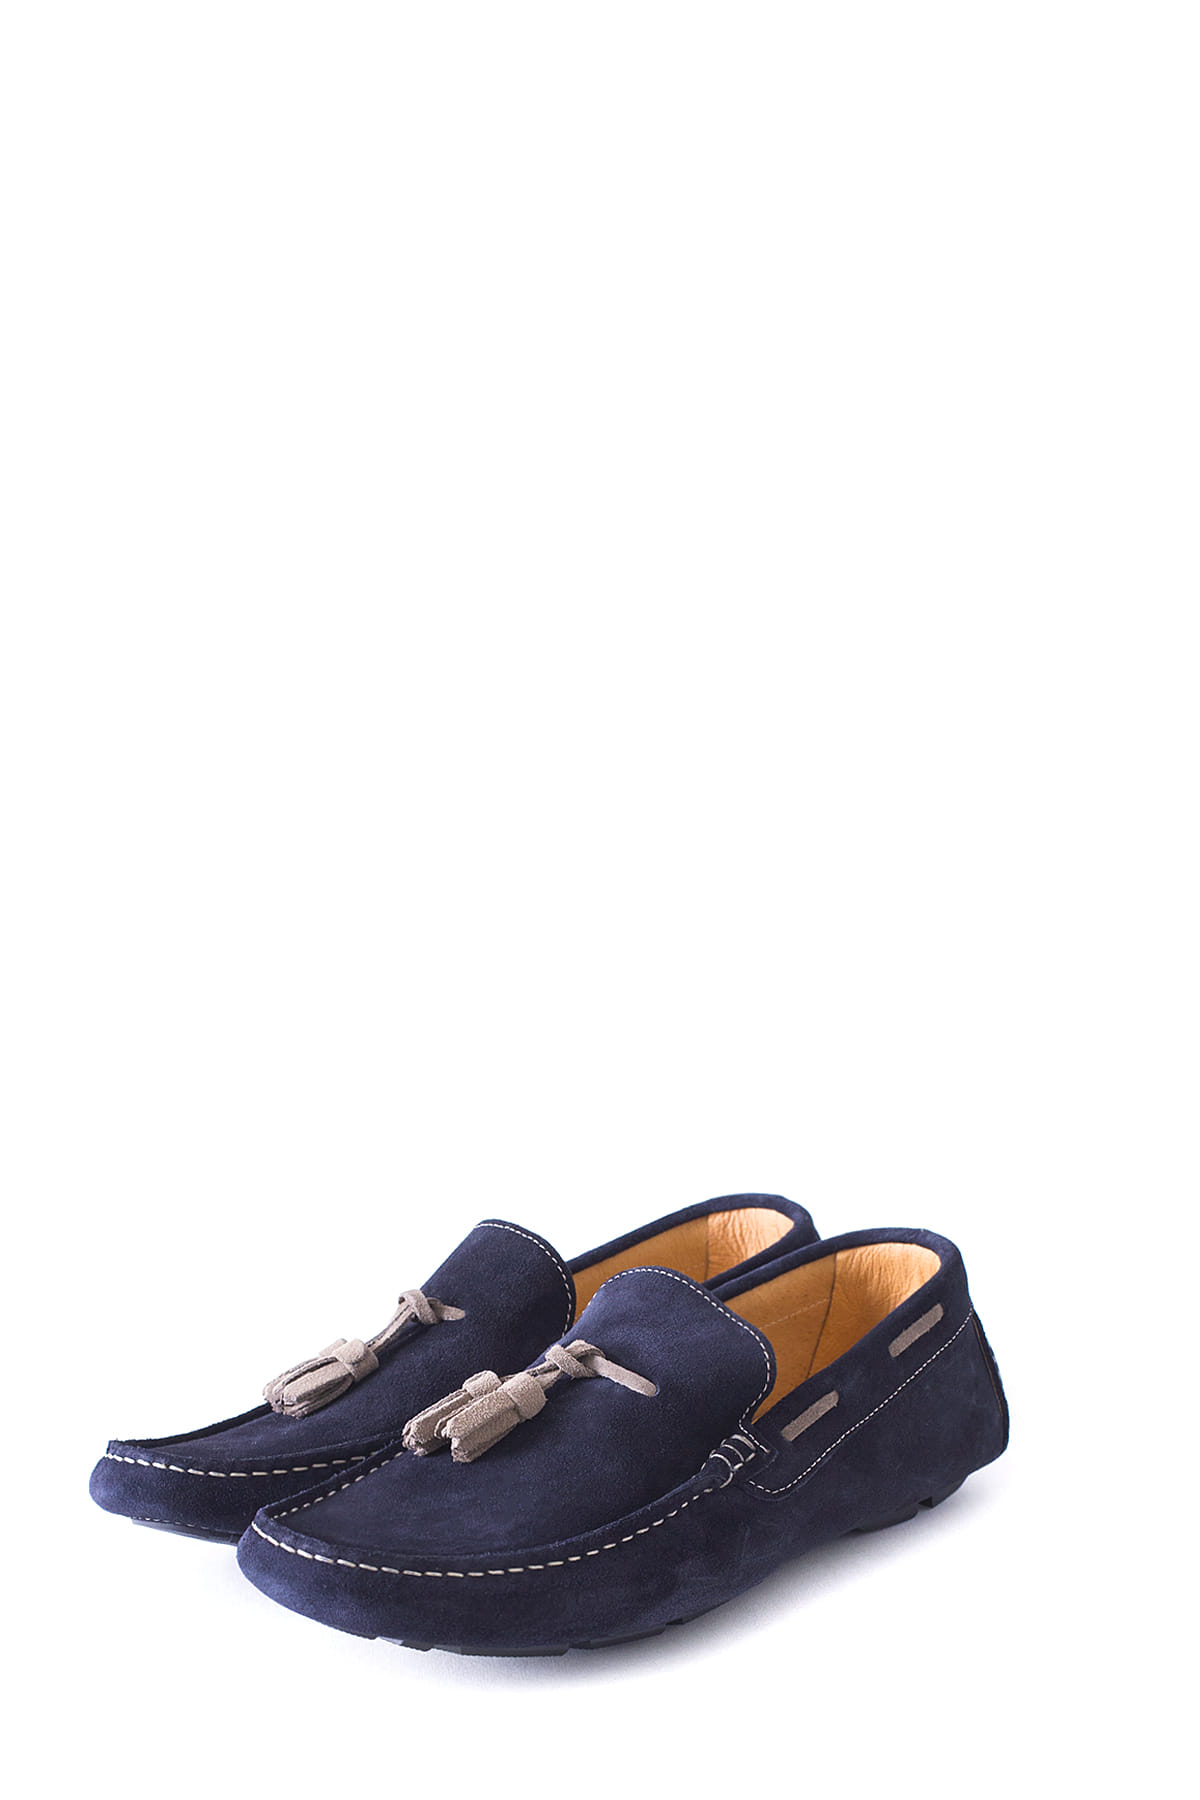 Pico Maranta : Driving Shoes (Navy)